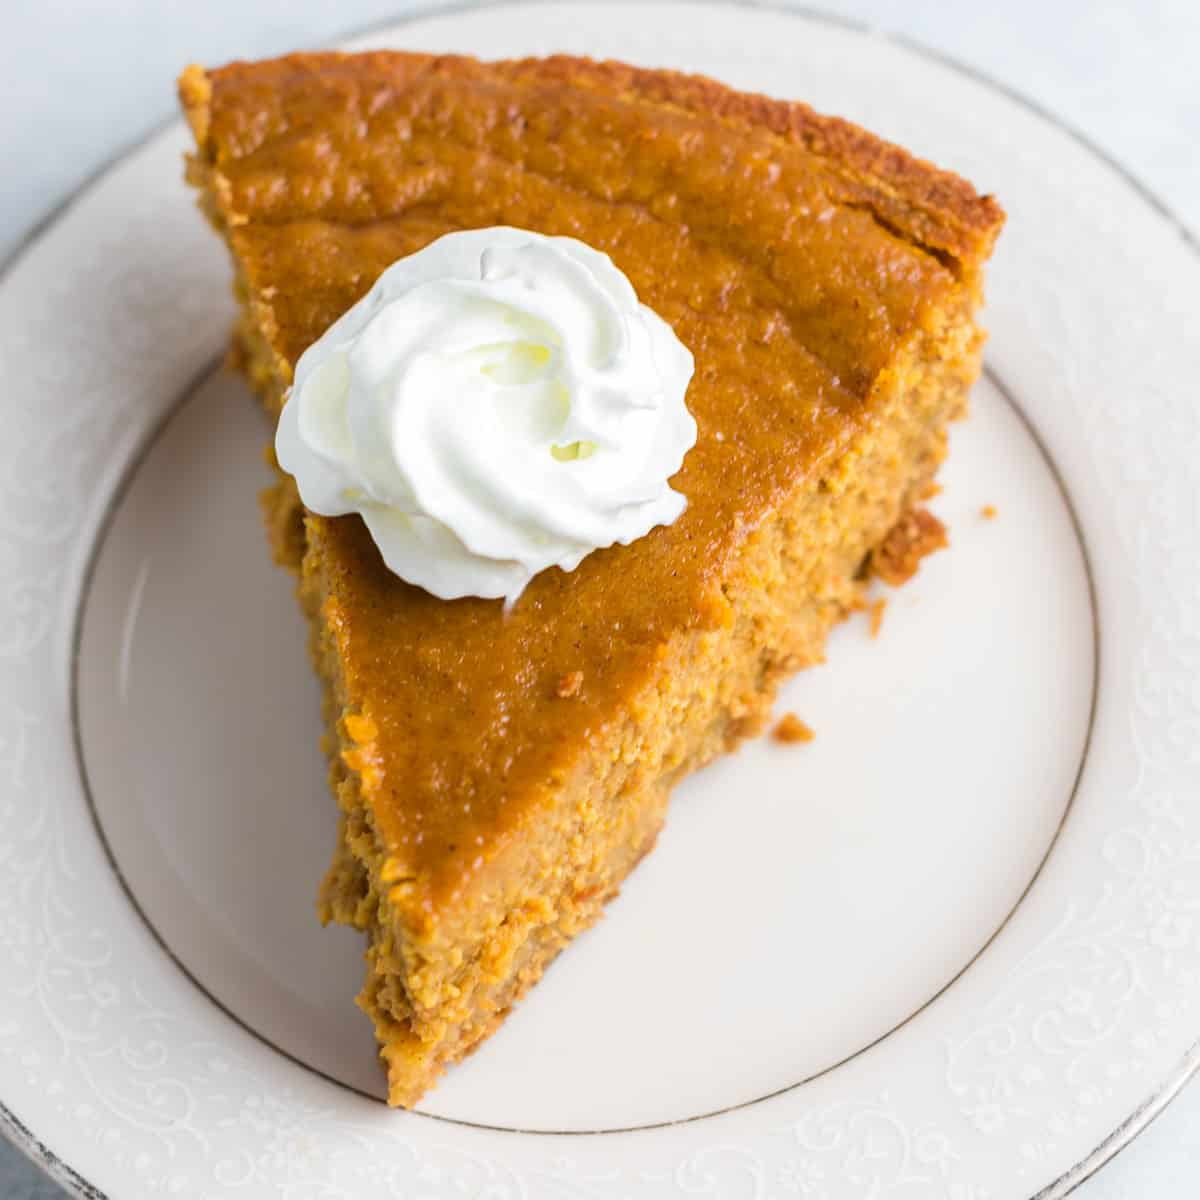 a slice of pumpkin pie on a plate topped with whipped cream